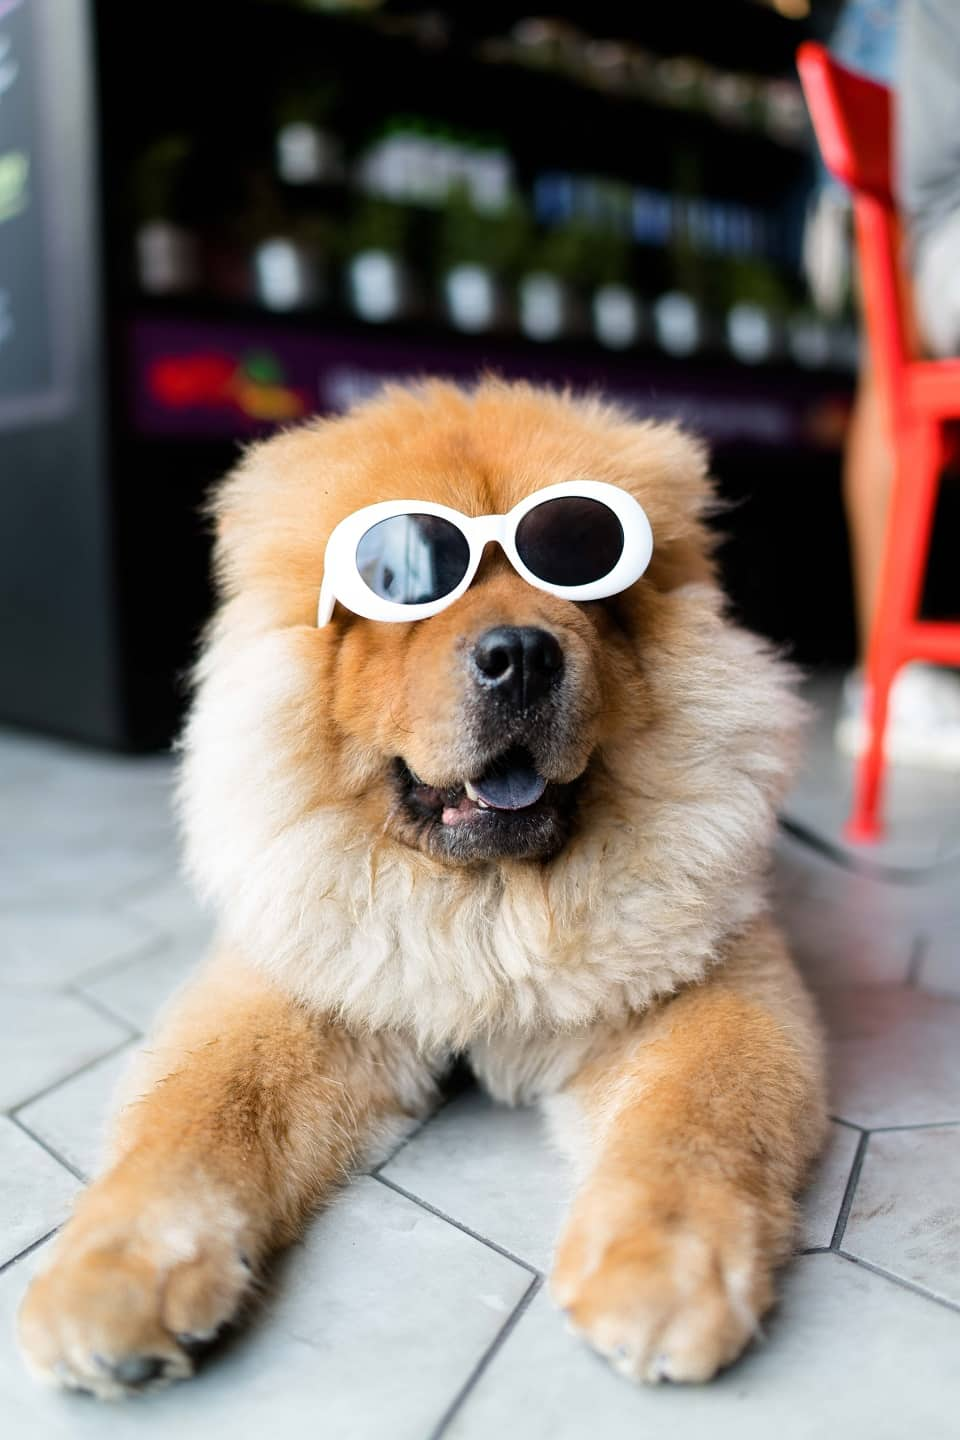 The London Dog Events Agenda For This Weekend 11-12 August Dog In Shades